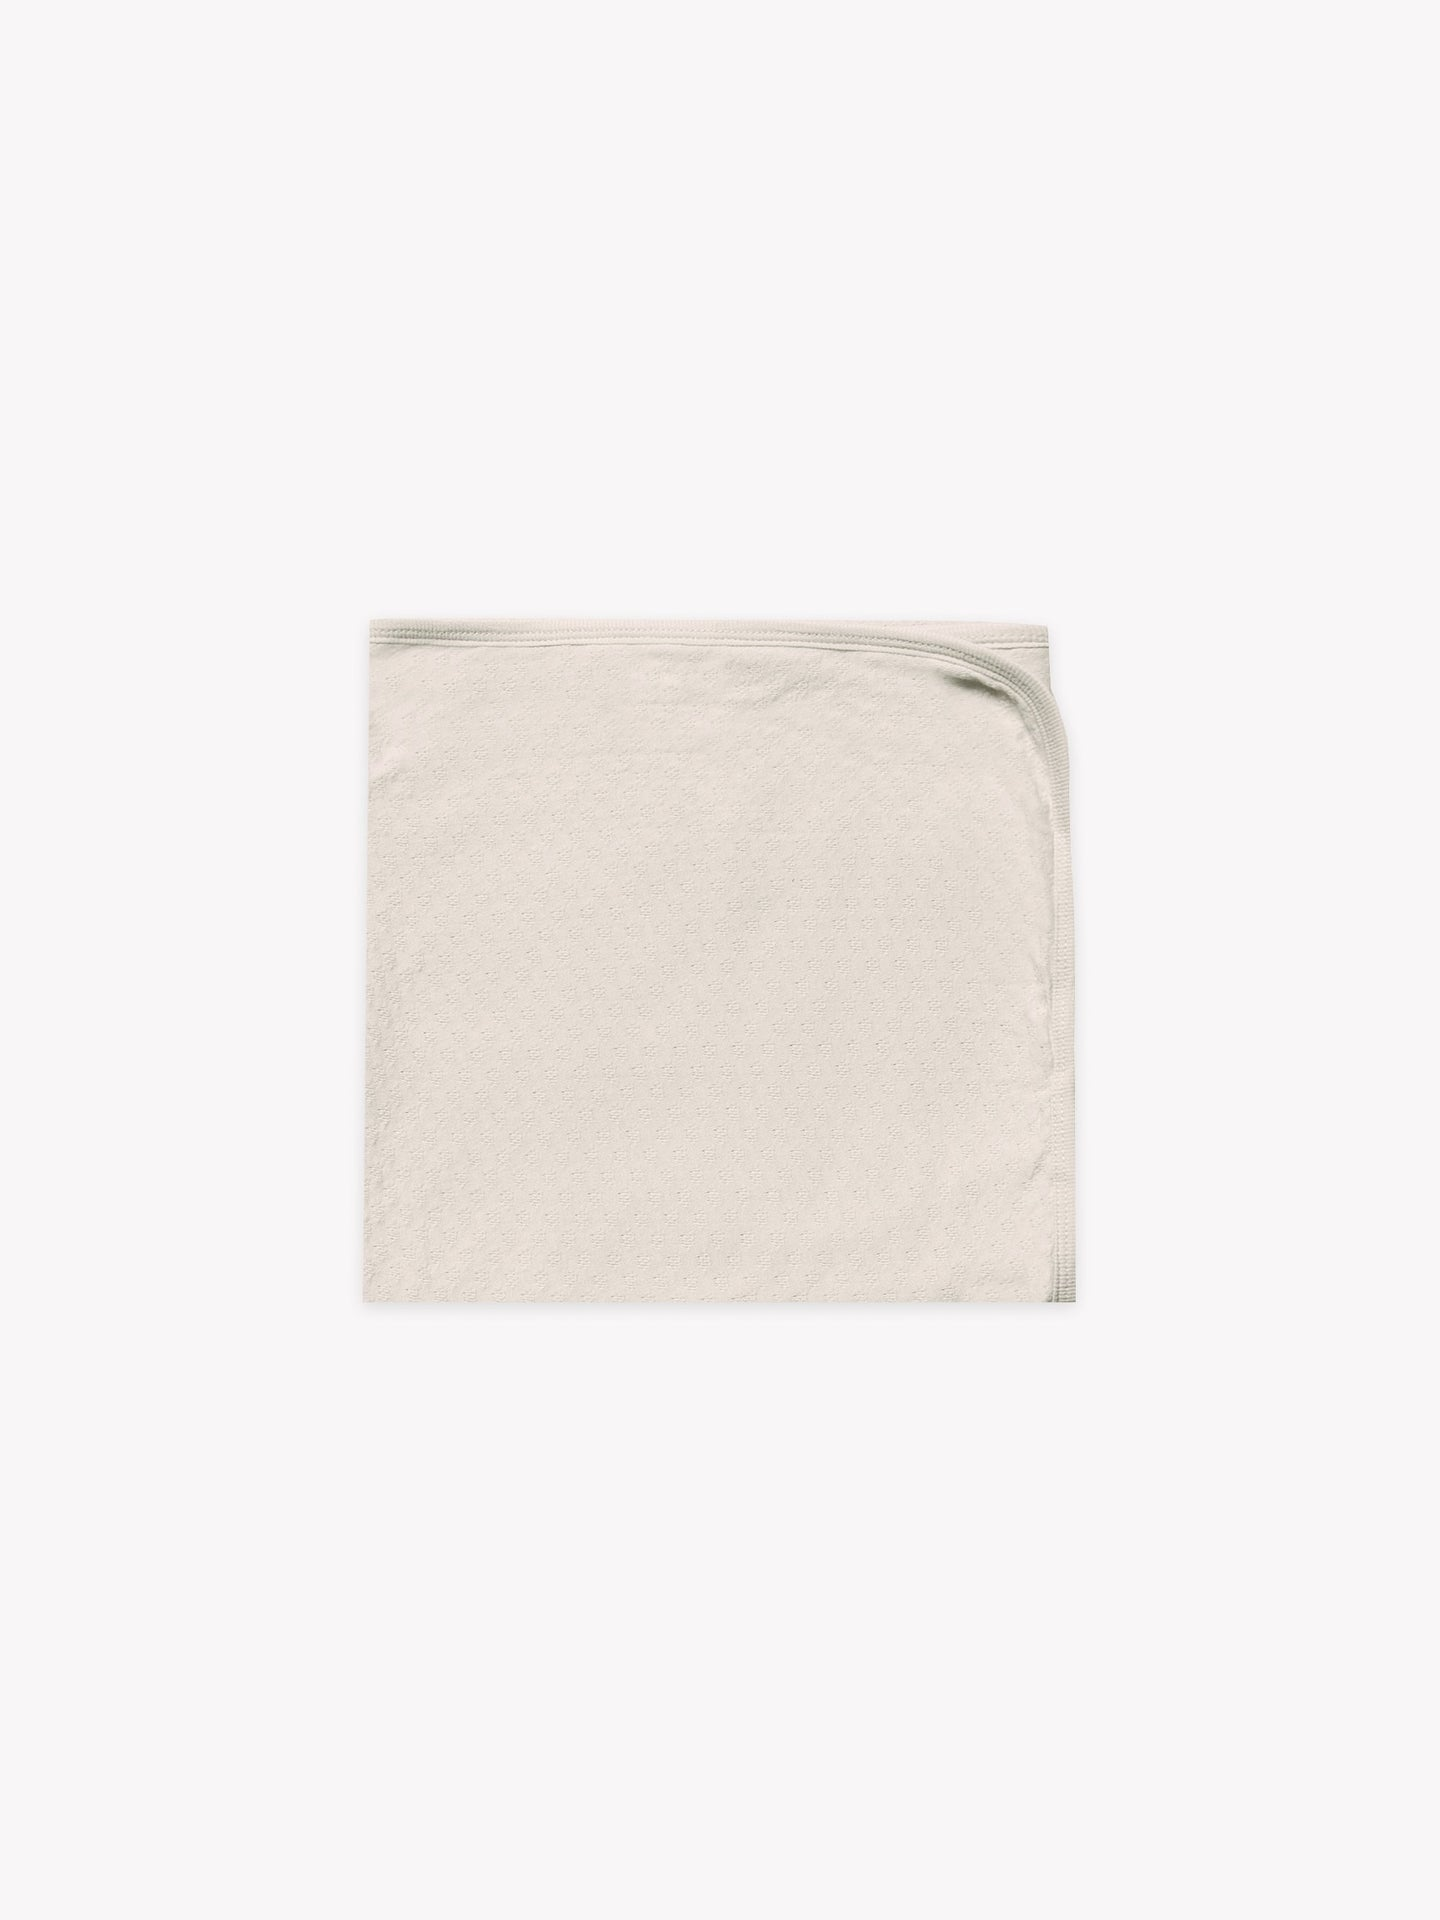 Quincy Mae - Organic Pointelle Baby Blanket - Pebble